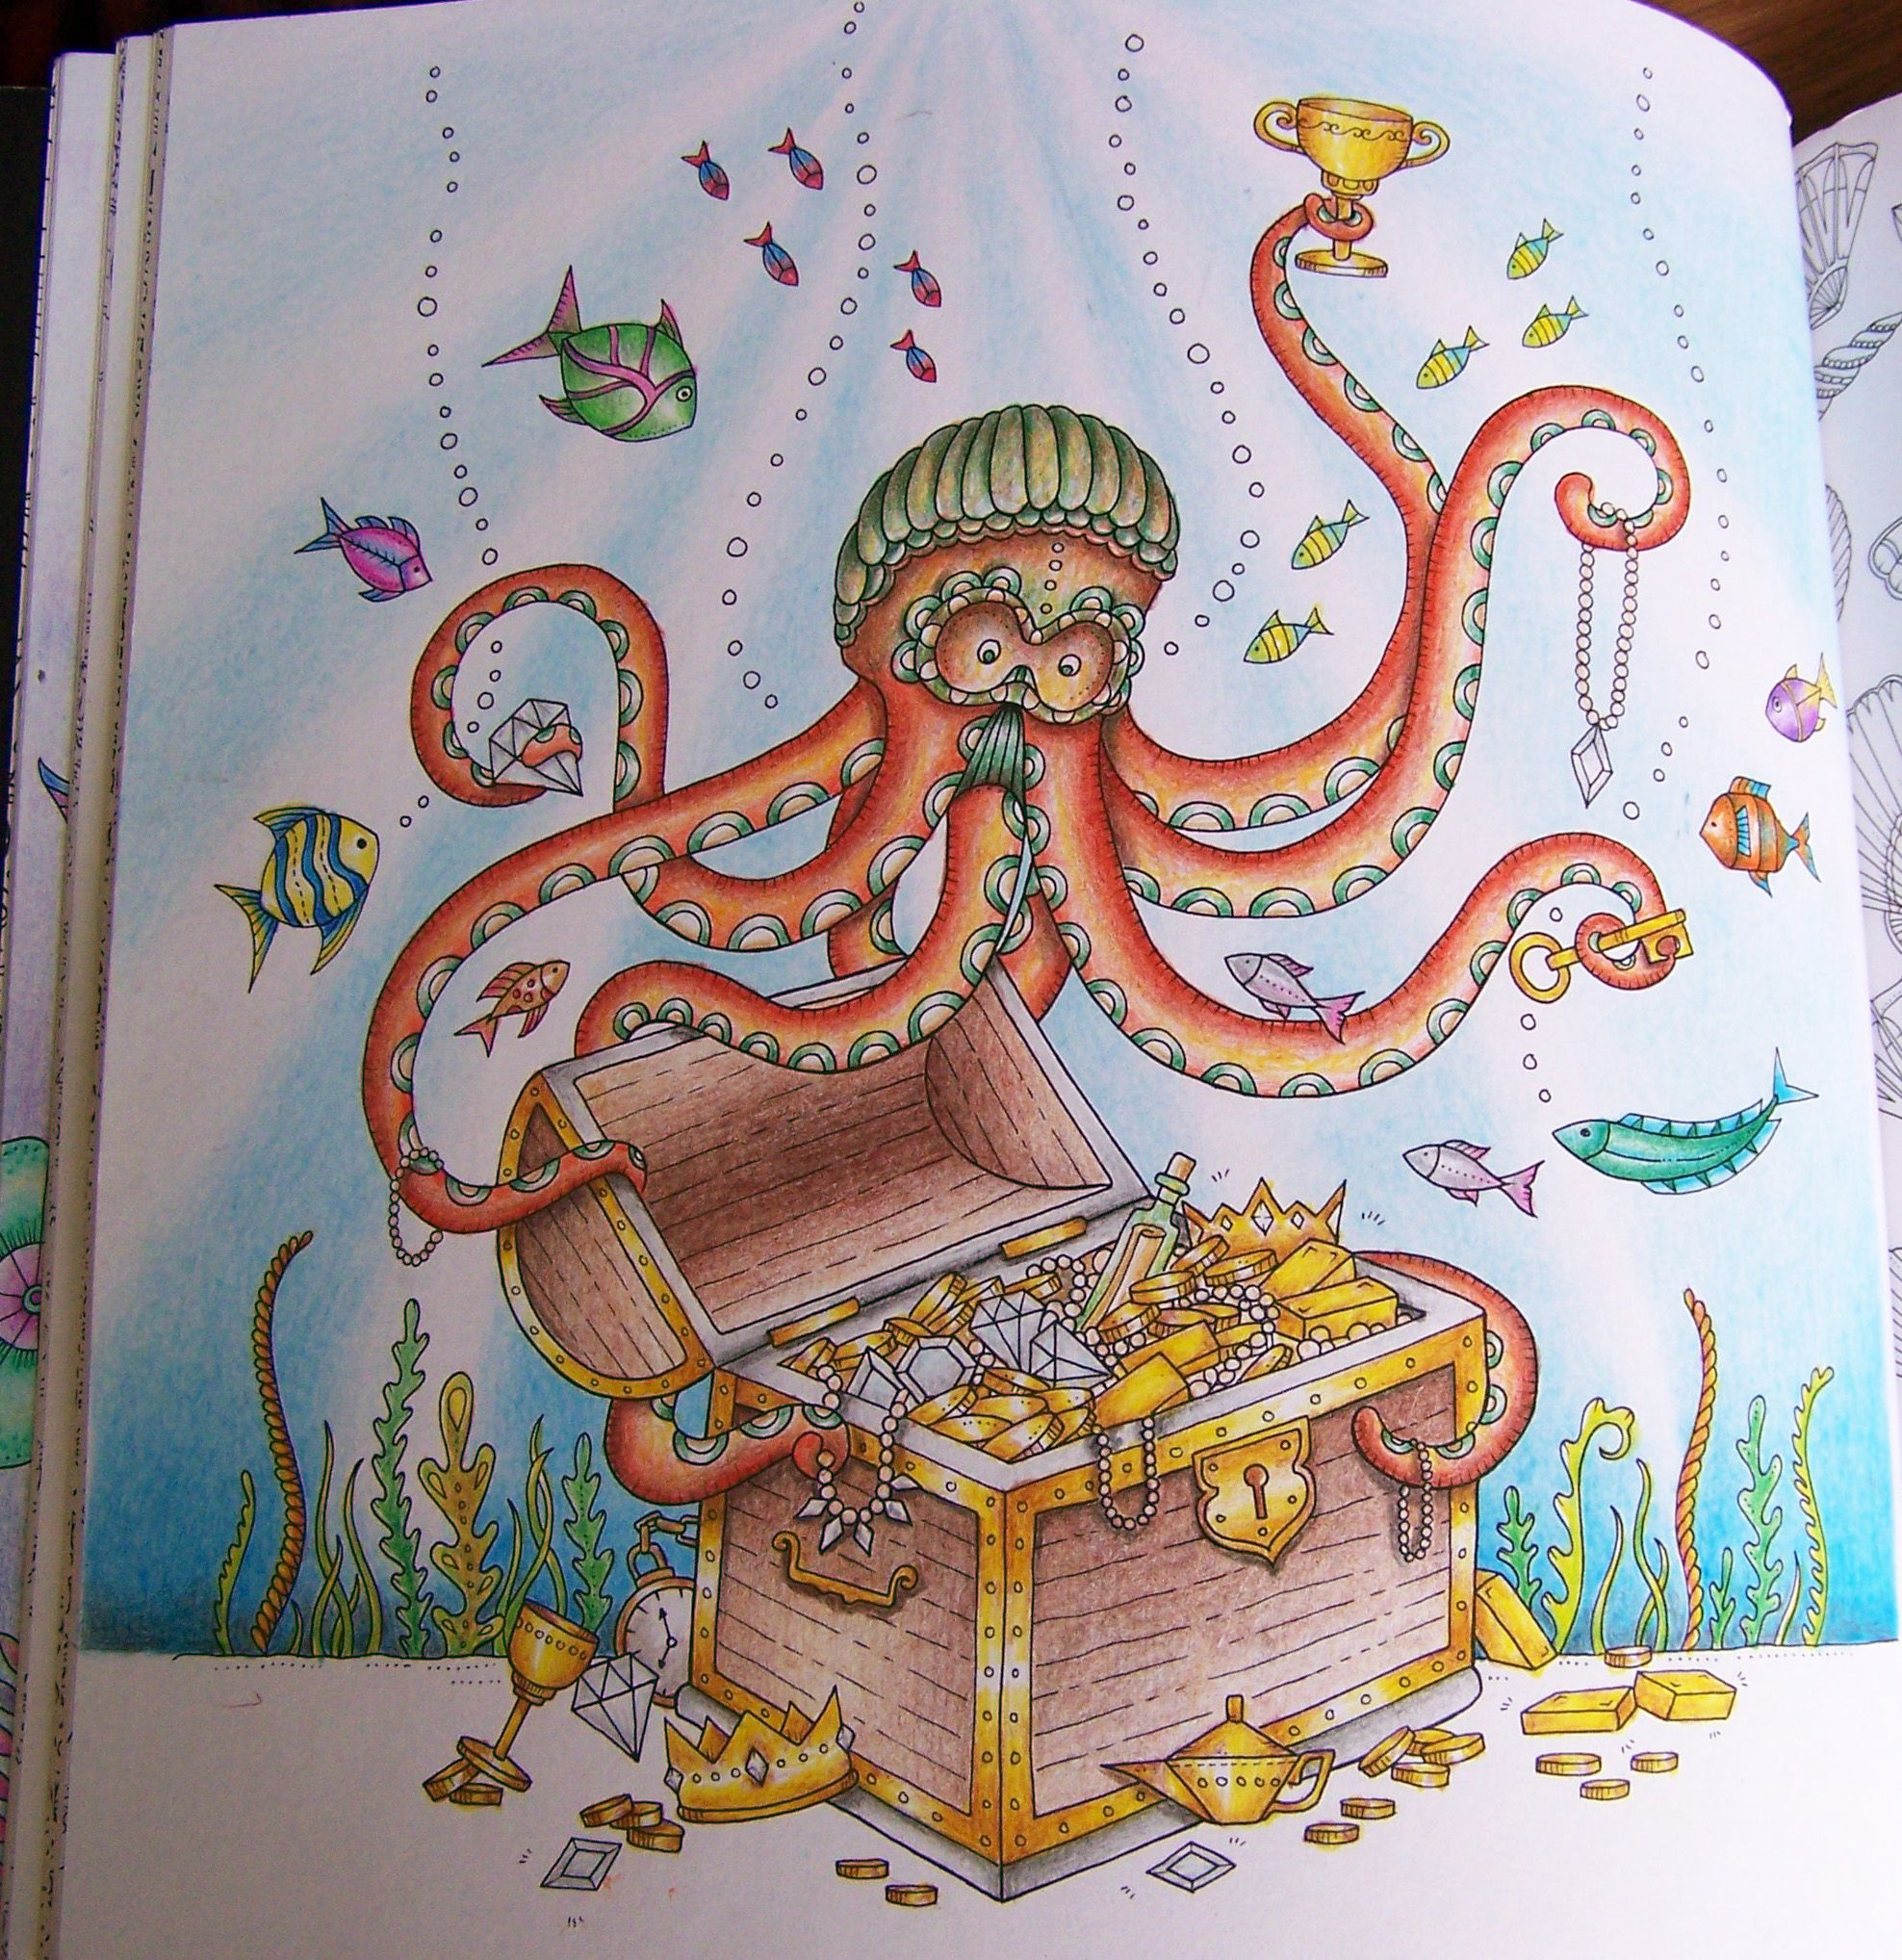 From The Lost Ocean Book By Johanna Basford Octopus And Treasure Chest Full